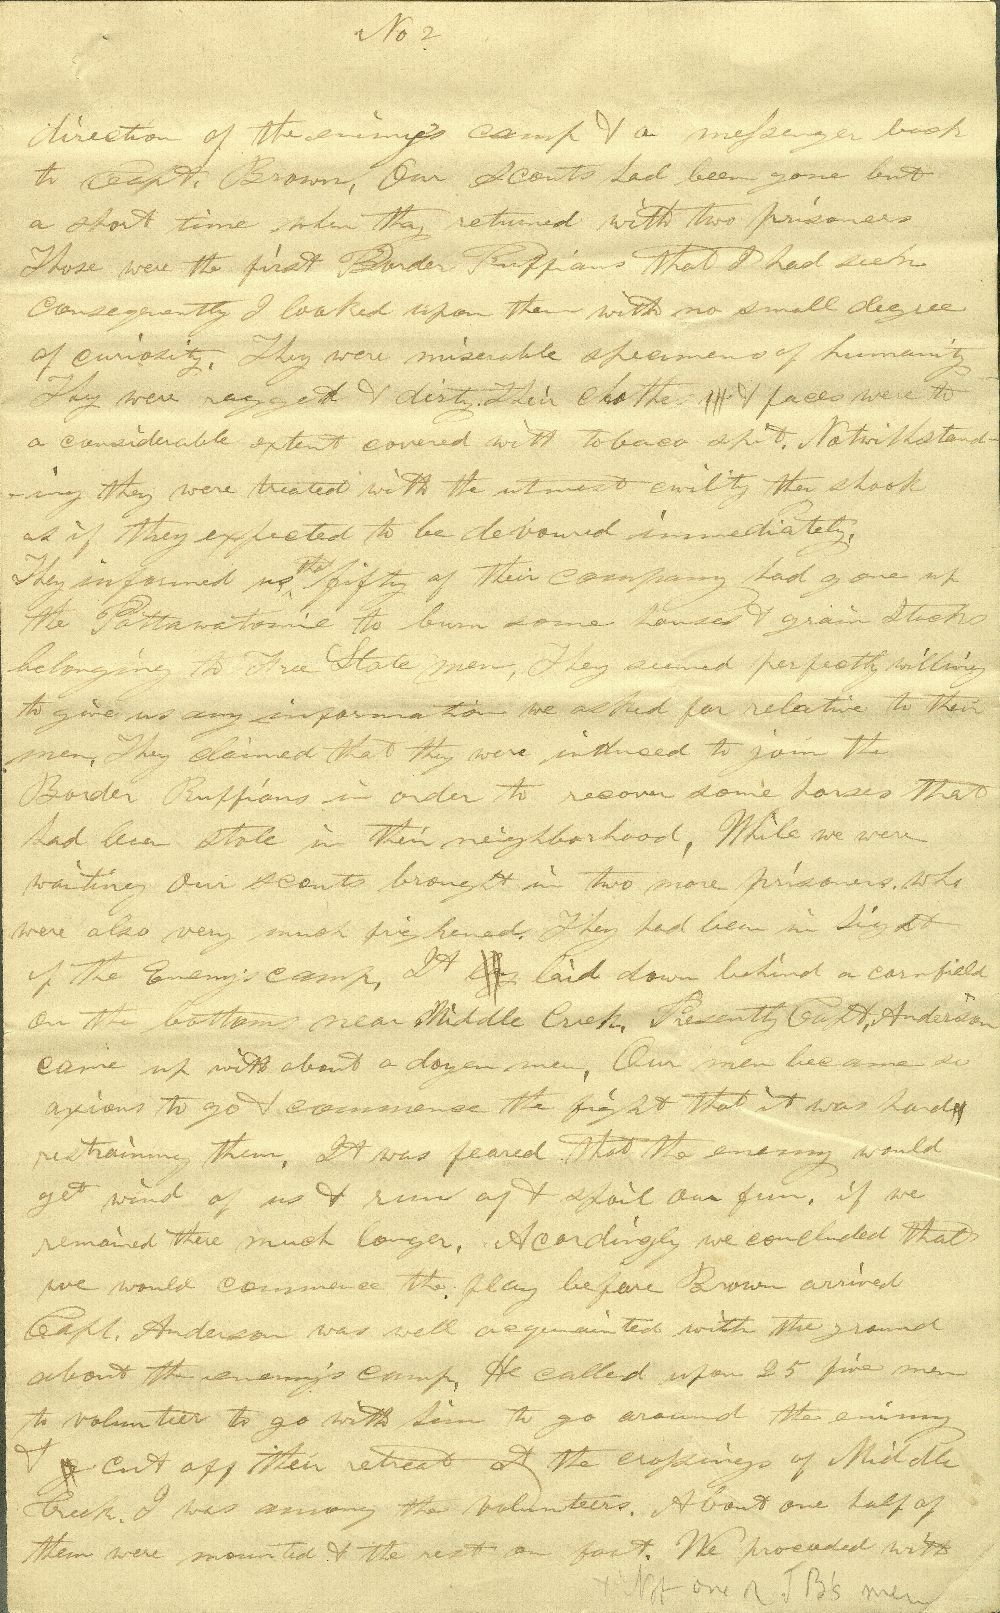 C. G. Allen's response to Redpath and Hinton's call for information about John Brown - 5